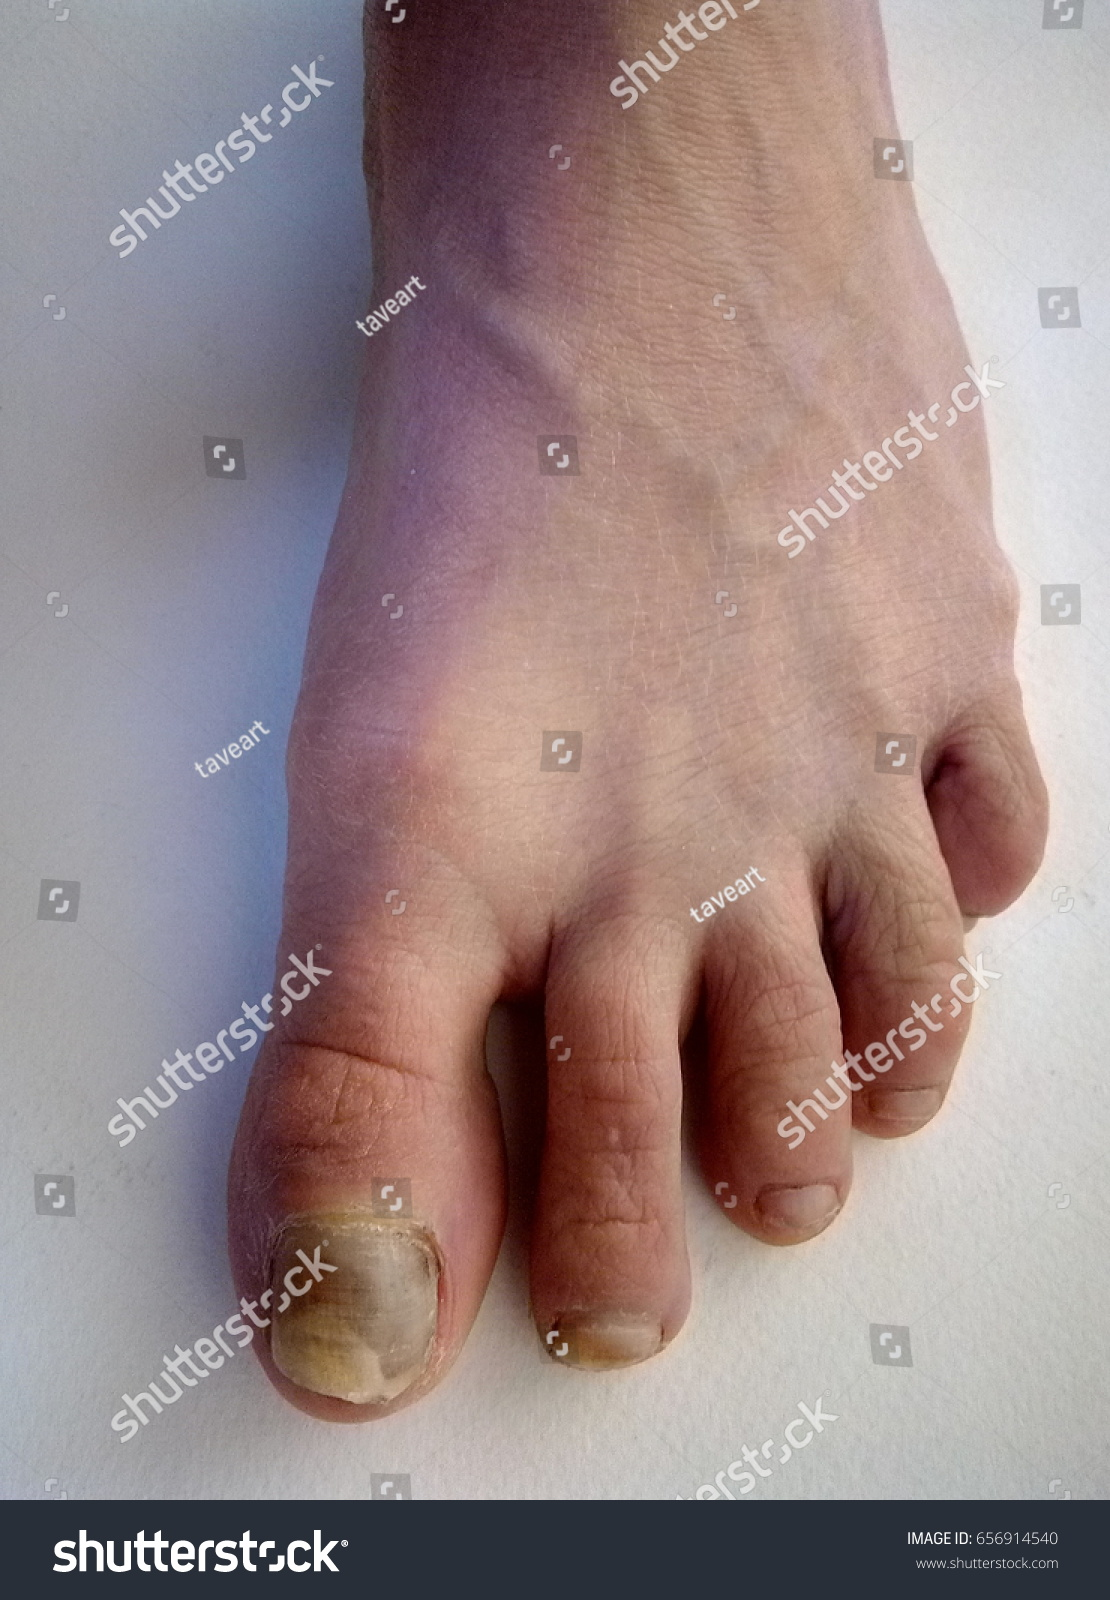 Bruise Nail On Foot Stock Photo (Royalty Free) 656914540 - Shutterstock